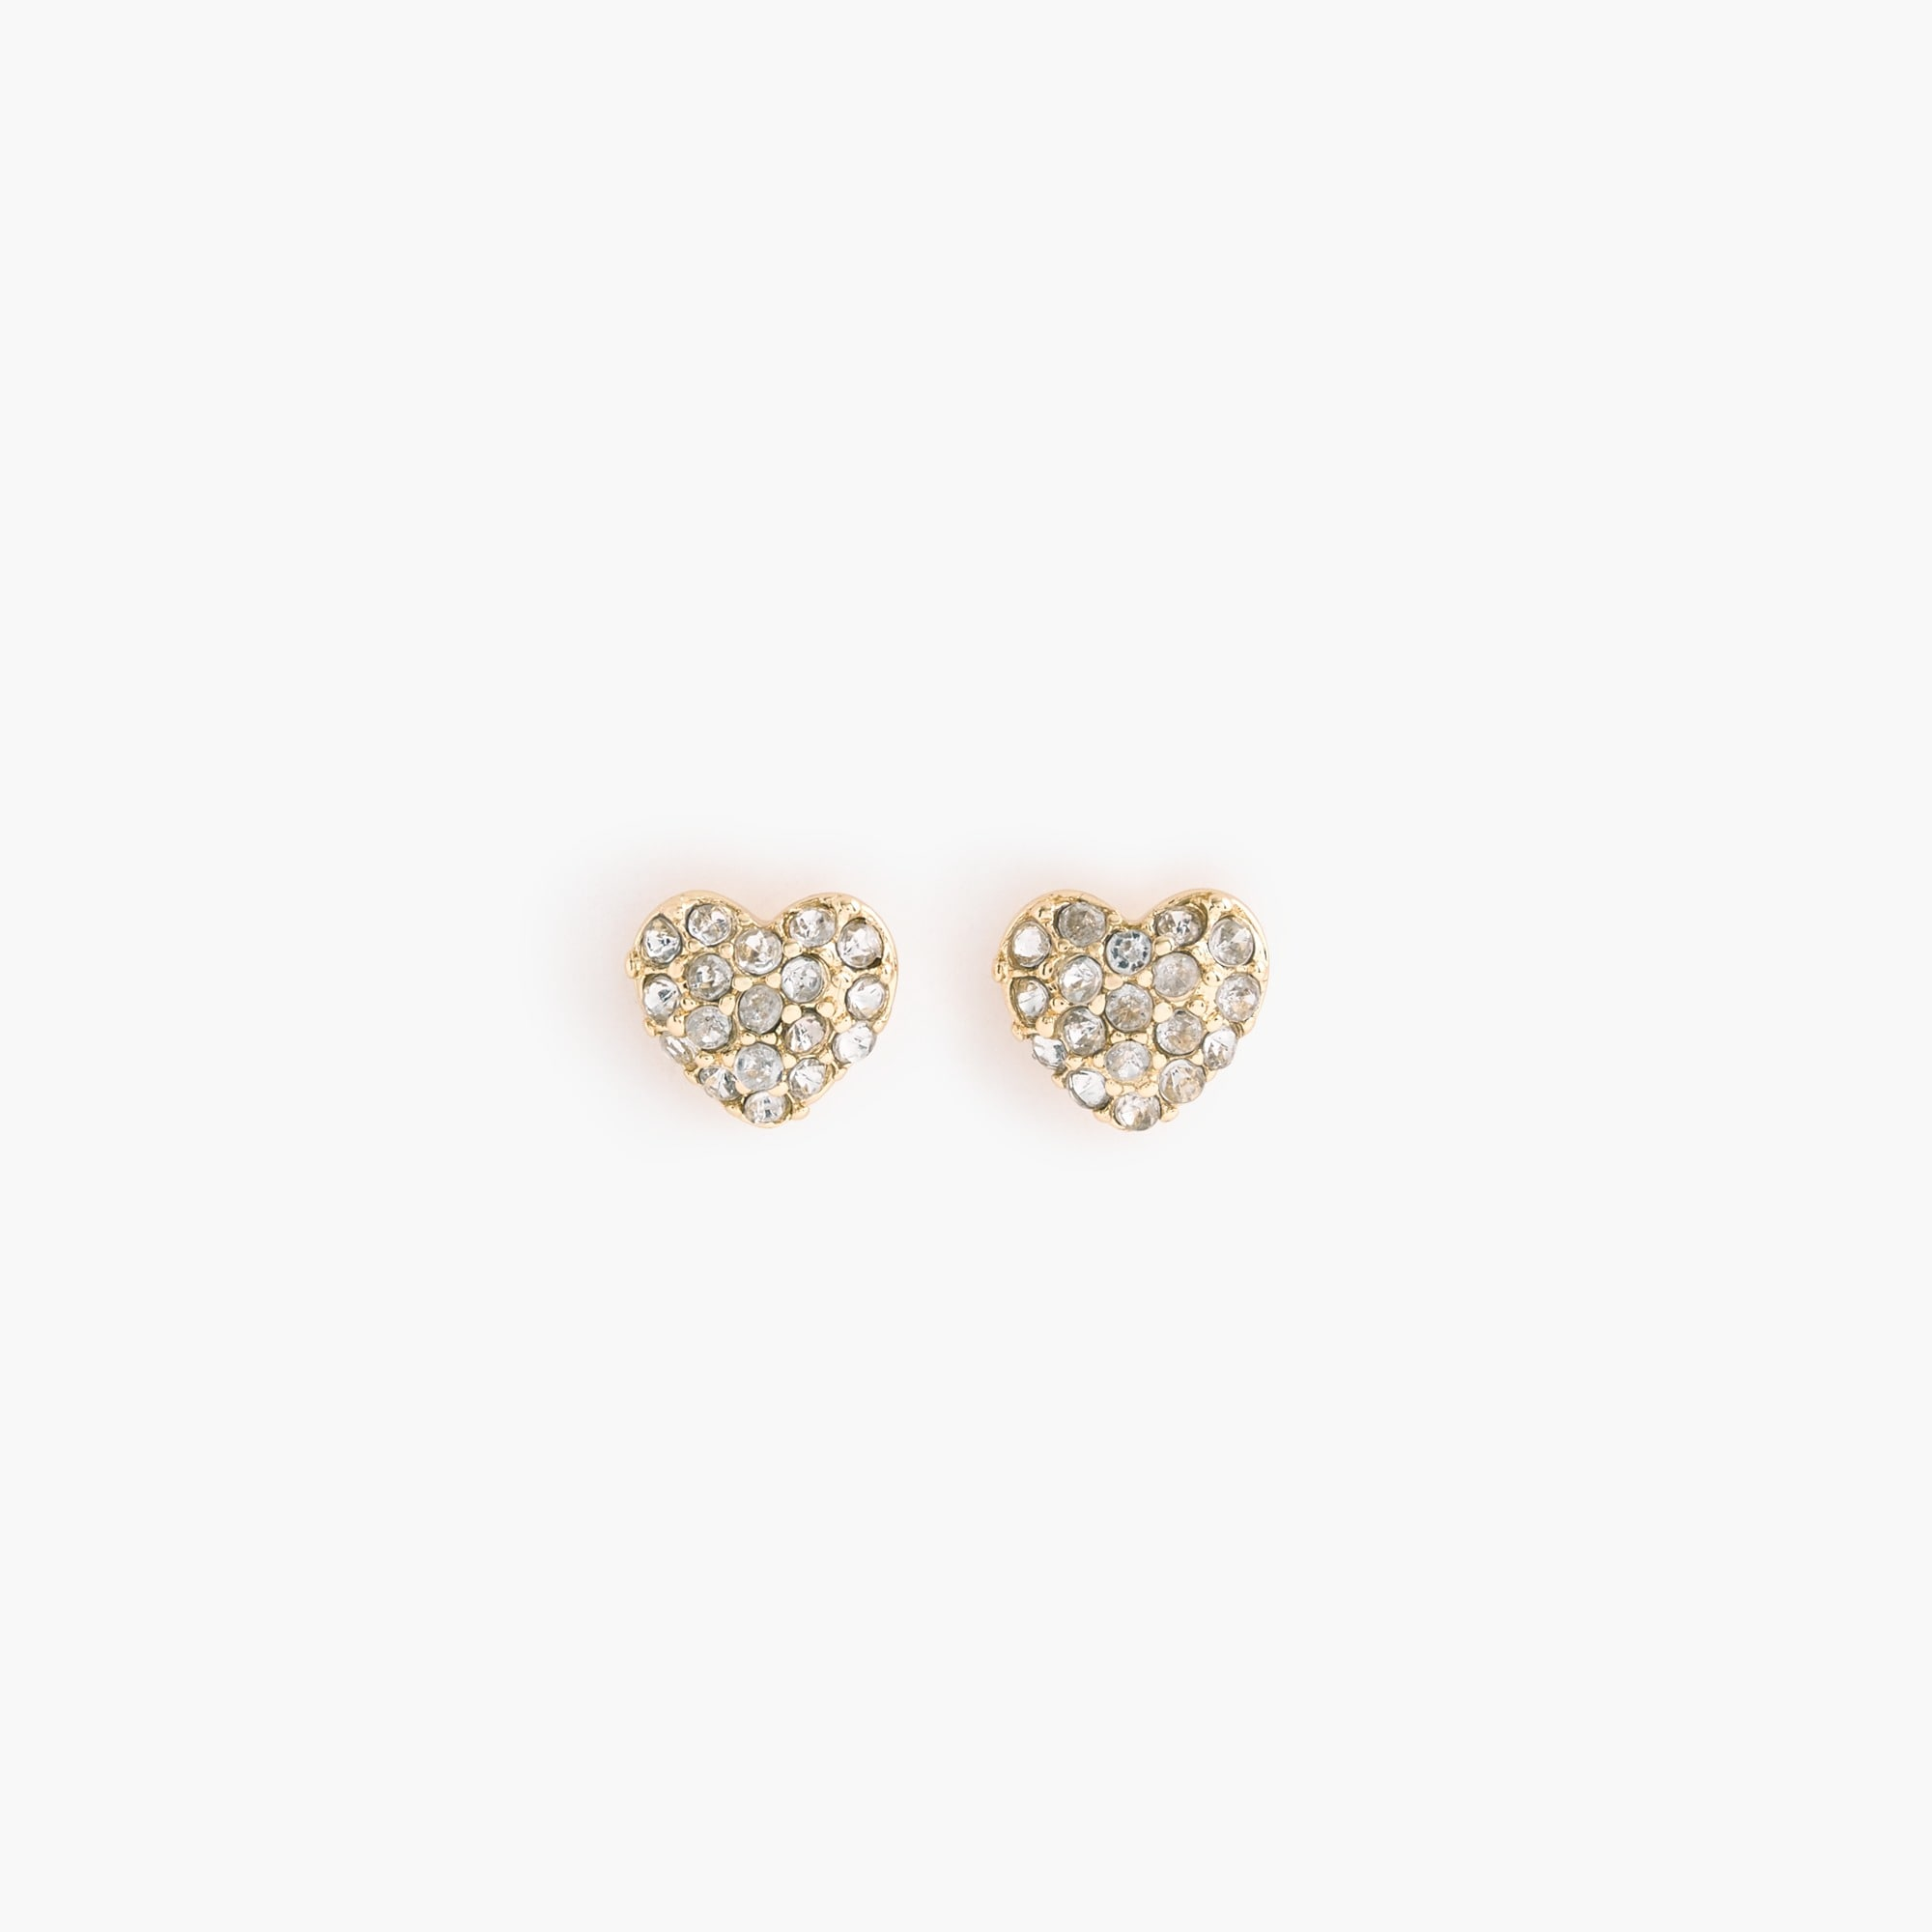 girls Girls' stud earrings